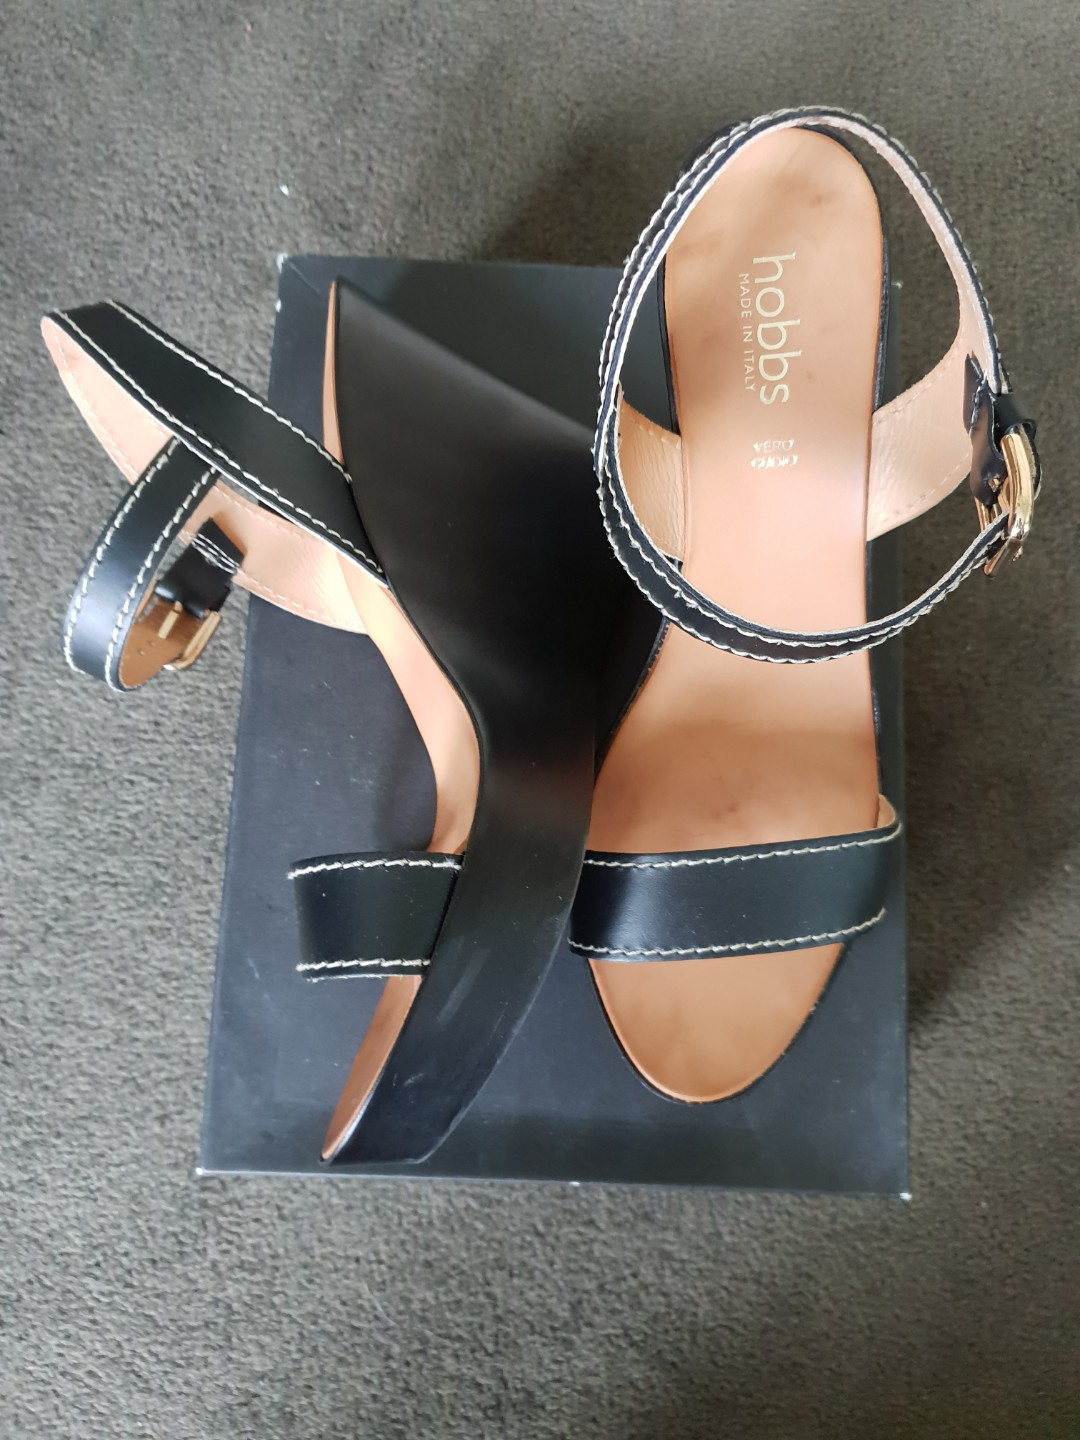 Wedge On SandalsWomen's Hobbs FashionShoes Carousell Black H9YbWD2IeE